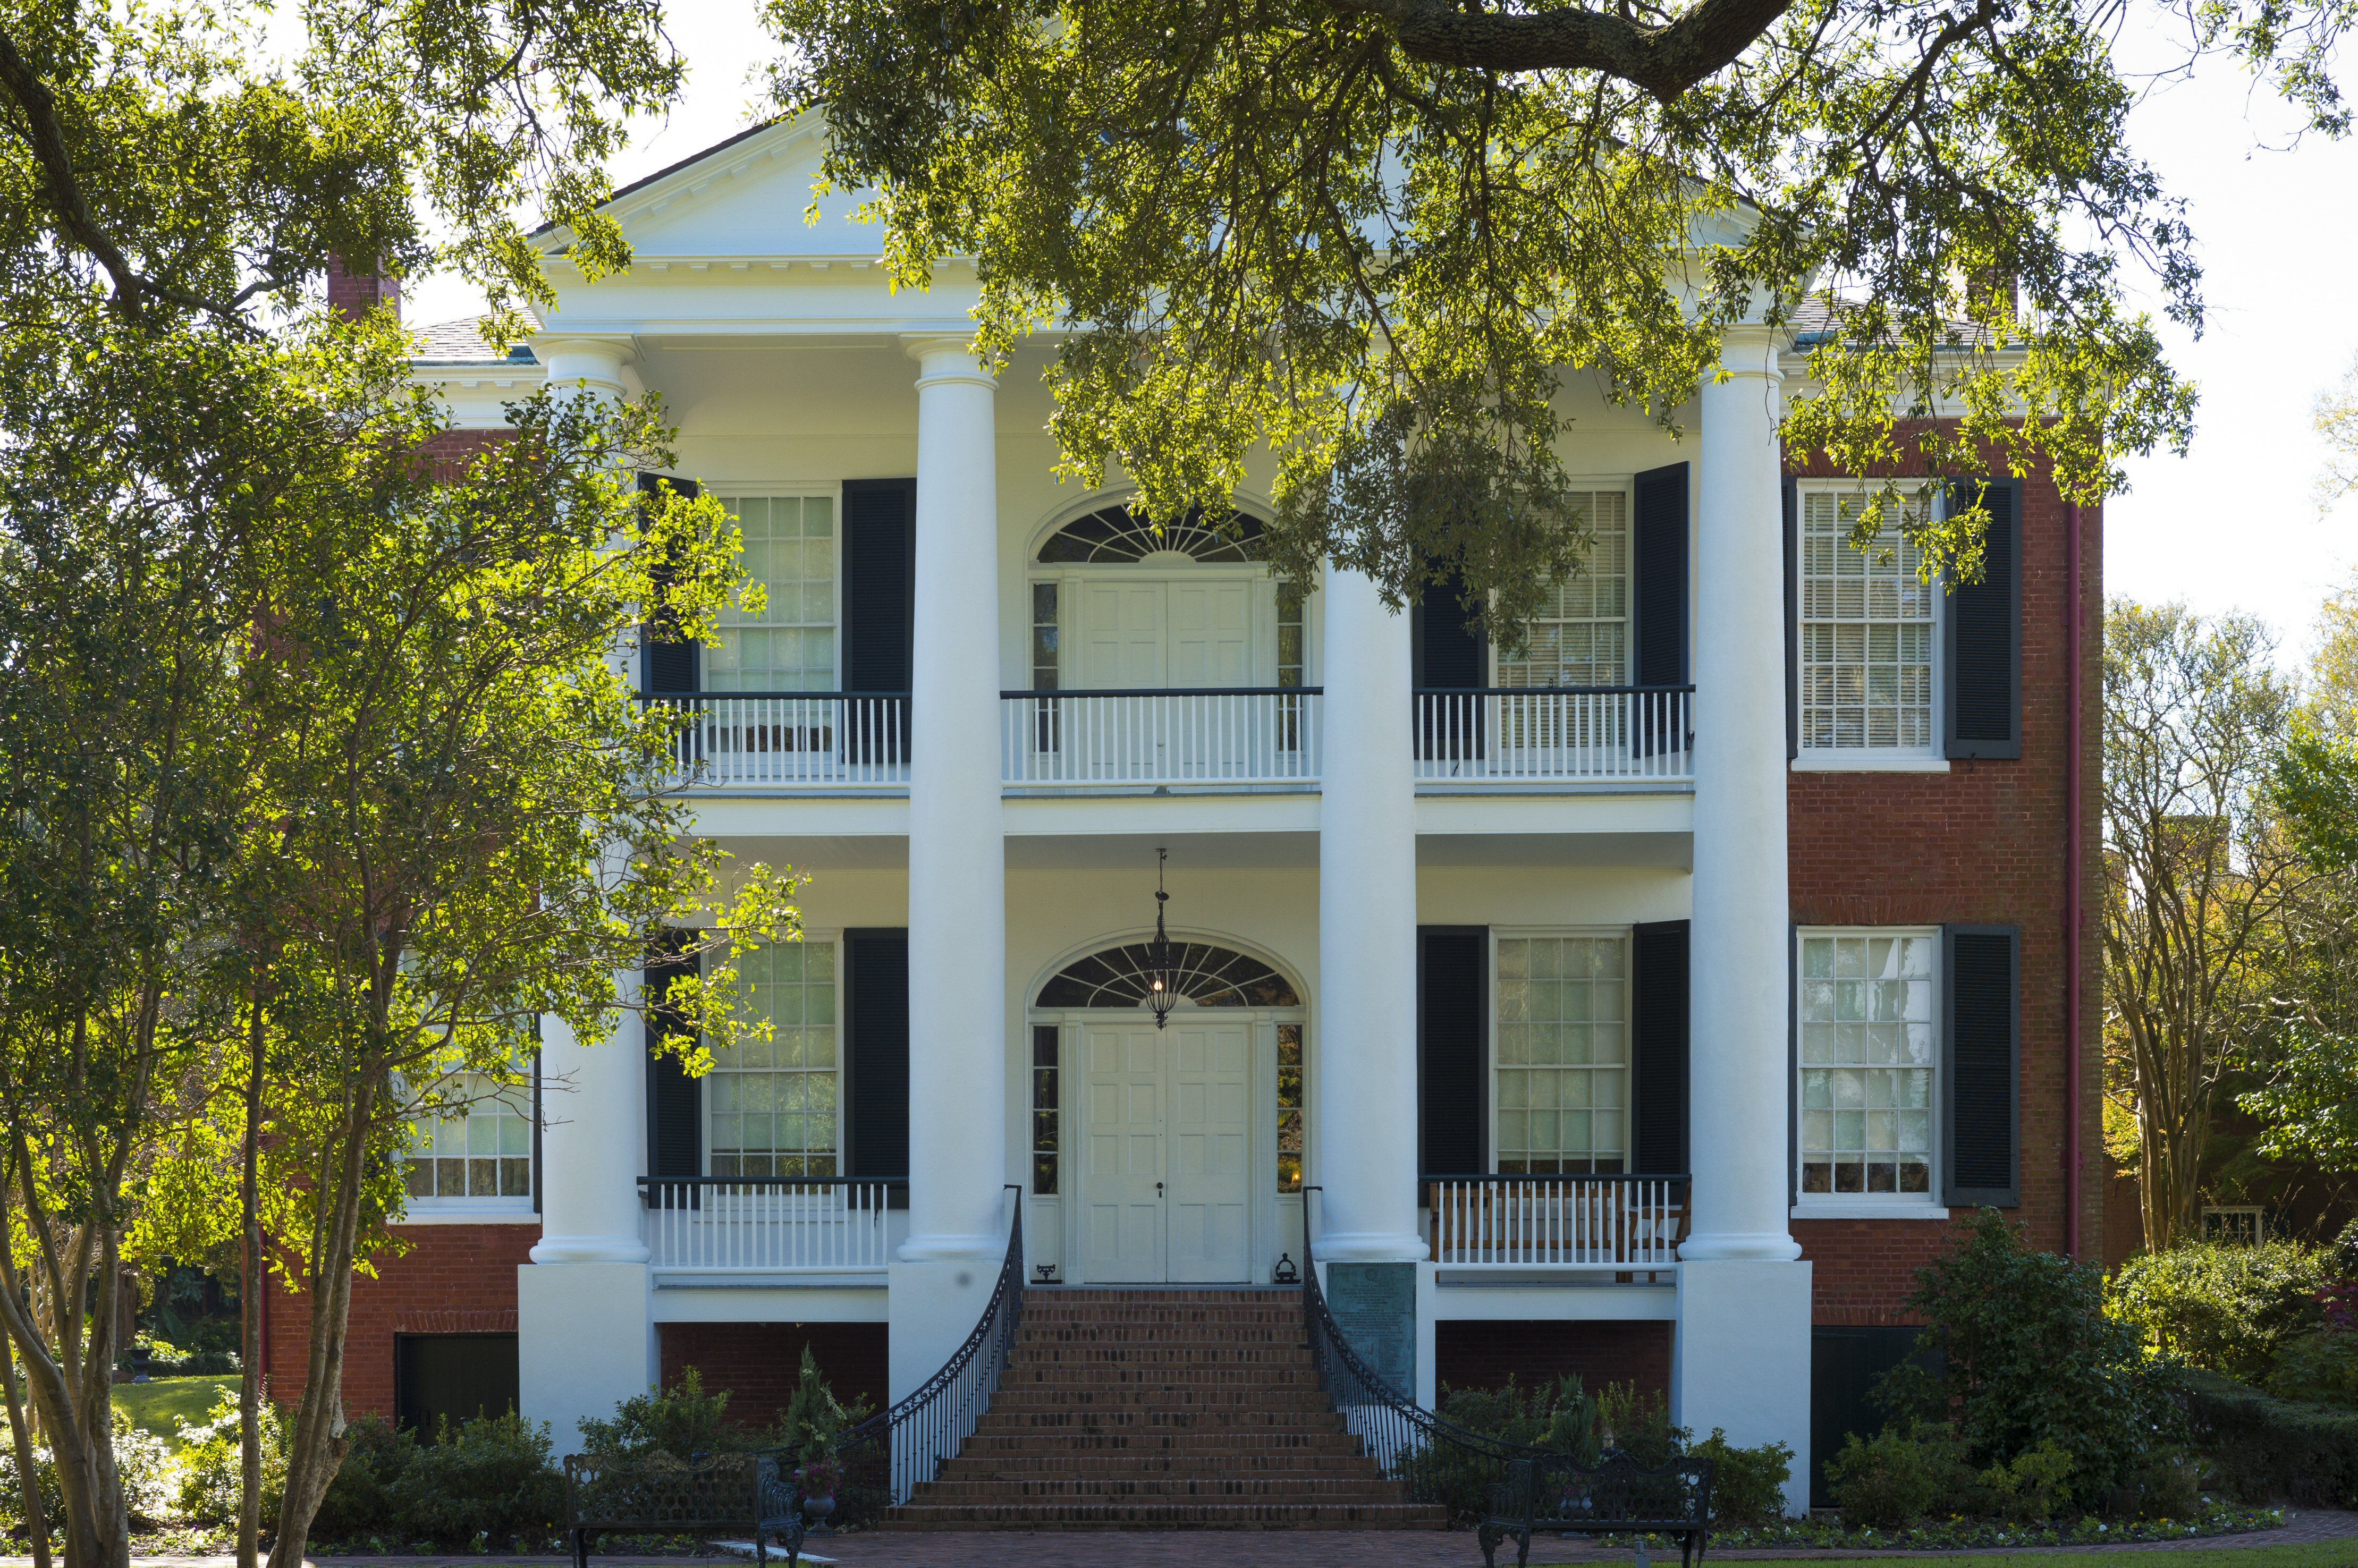 4 Tuscan Columns Rise To Pediment Over Two Front Porches On A Brick 2